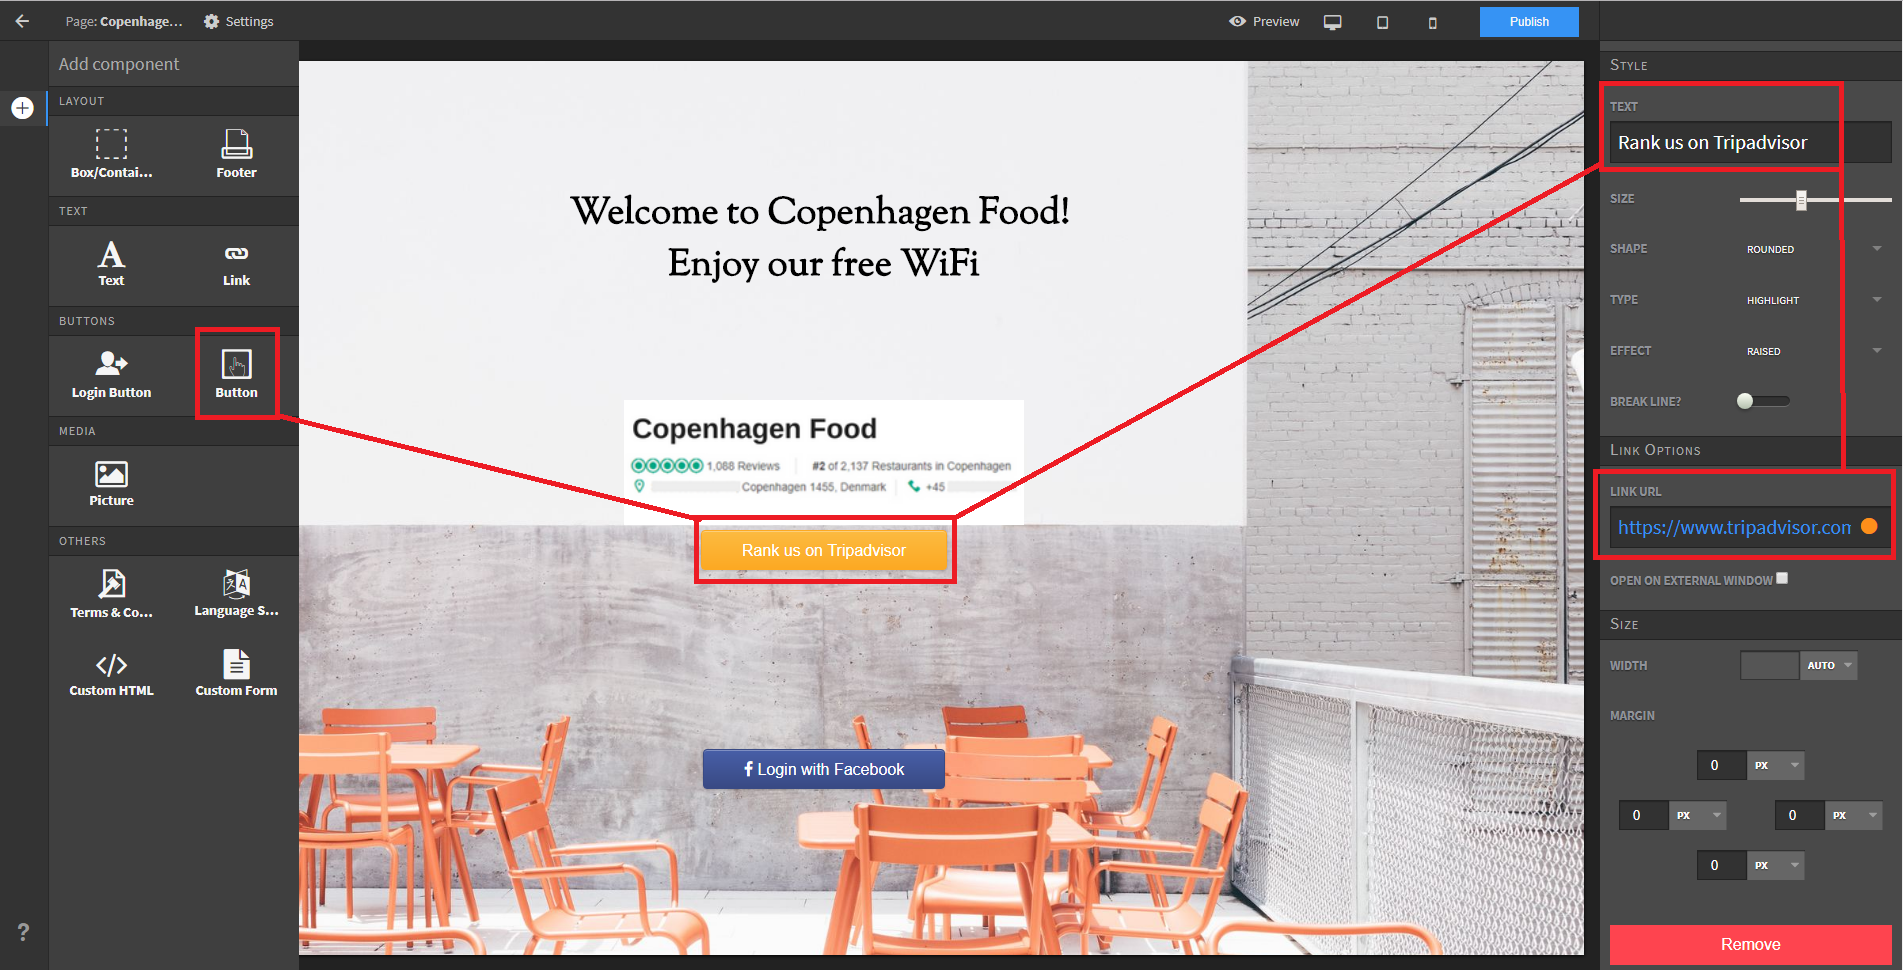 Copenhagen Food Tripadvisor Reviews Splash Page